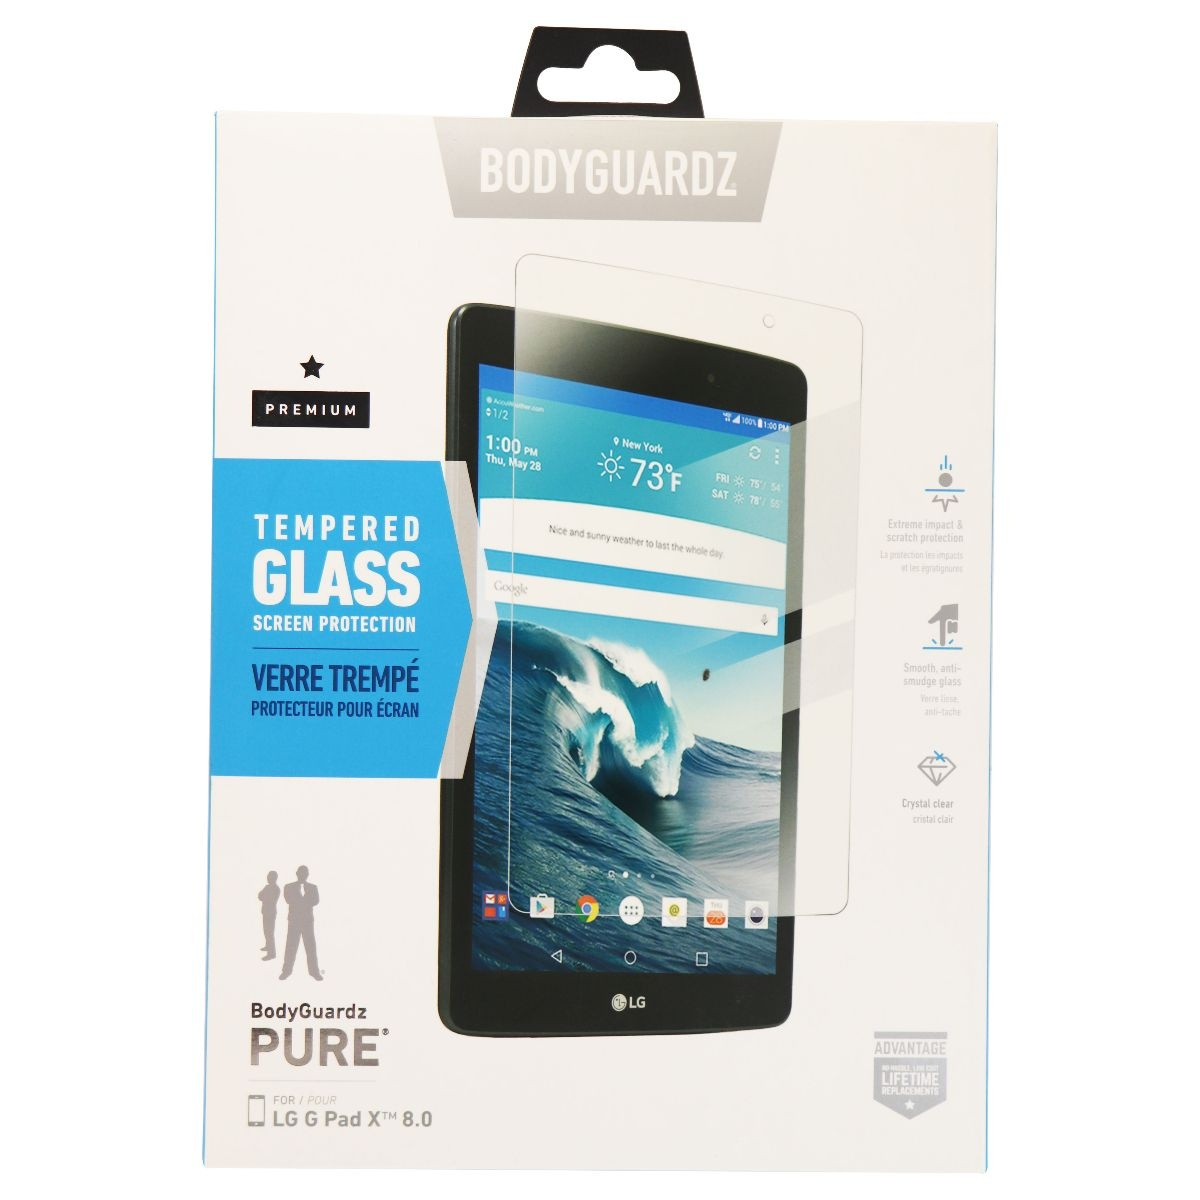 BodyGuardz Pure Series Premium Tempered Glass for LG G Pad X 8.0 - Clear